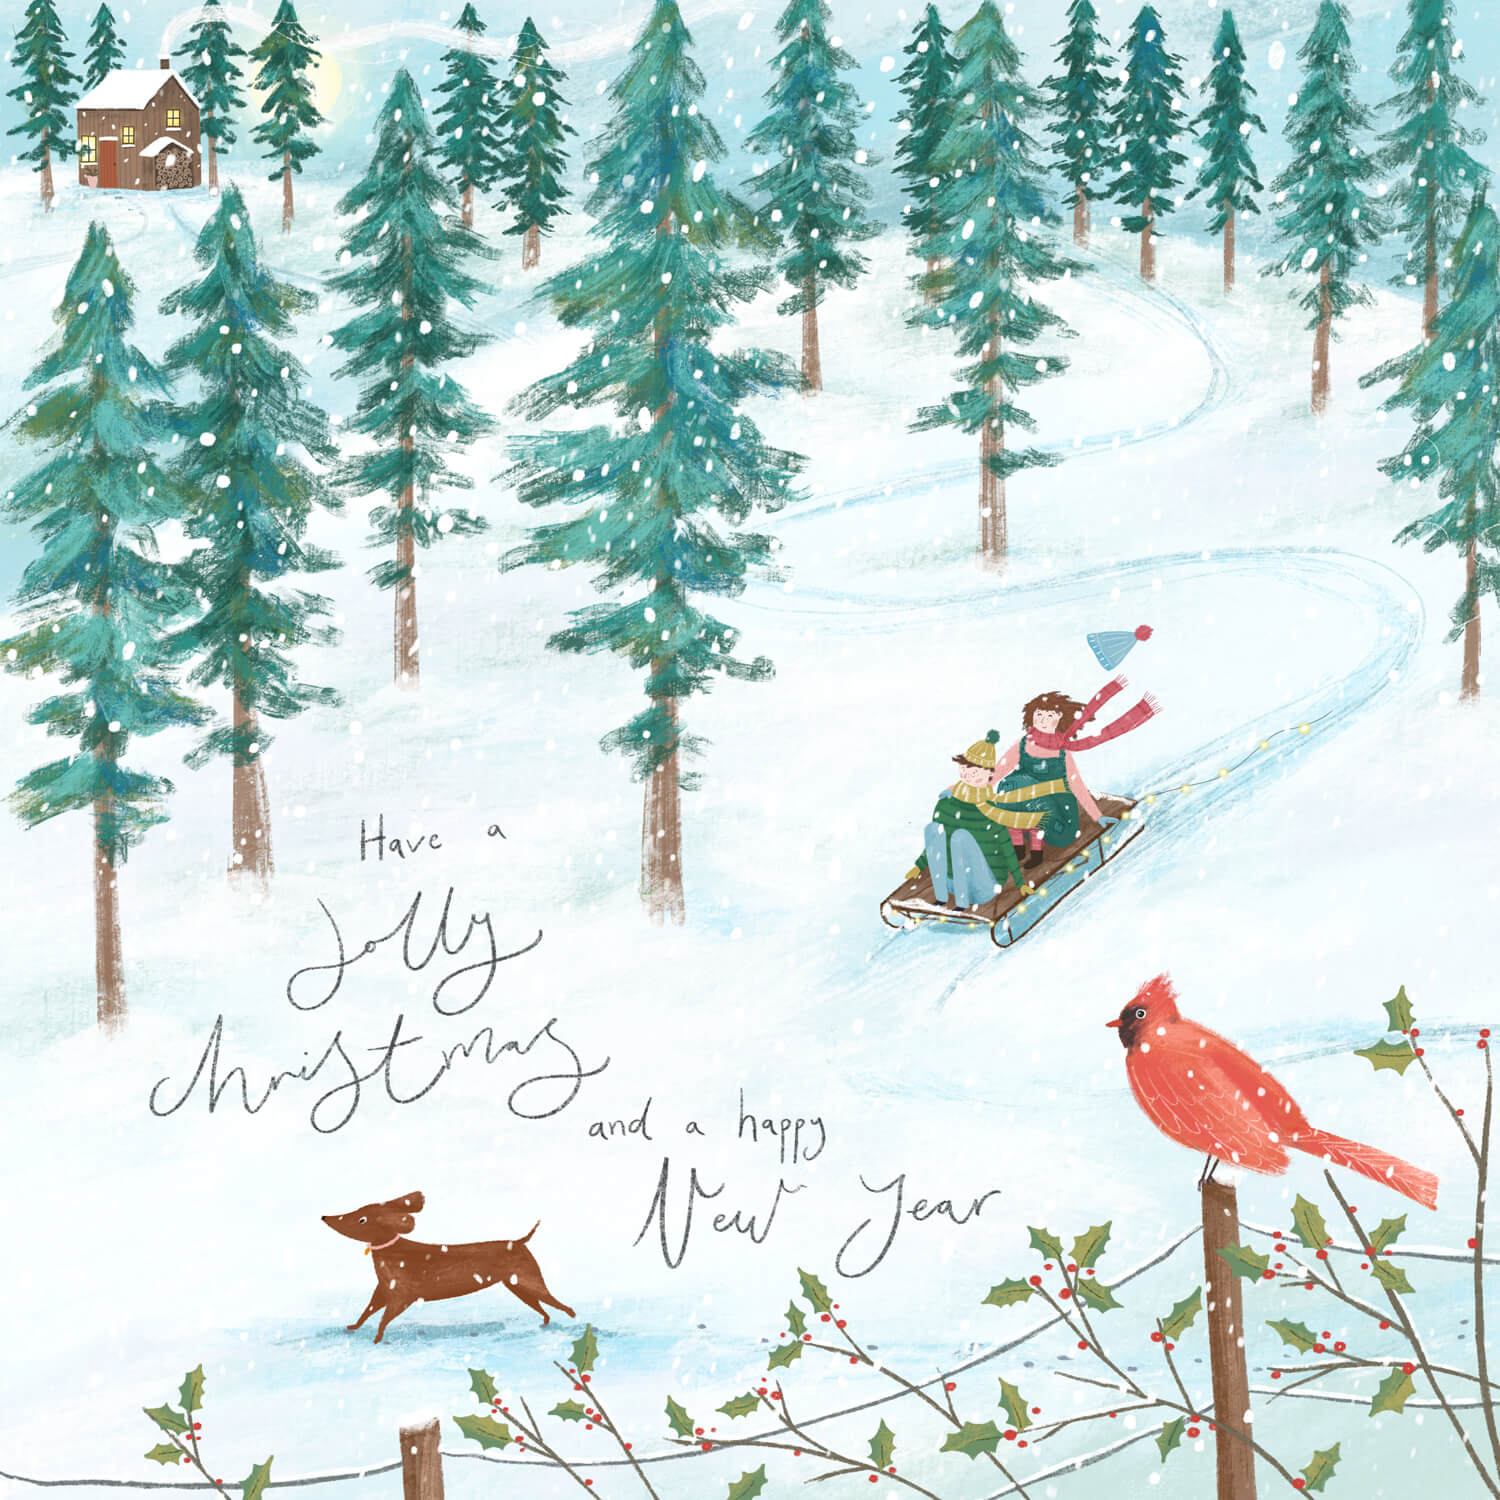 Illustration of kids on a sleigh at christmas by Imogen Davis